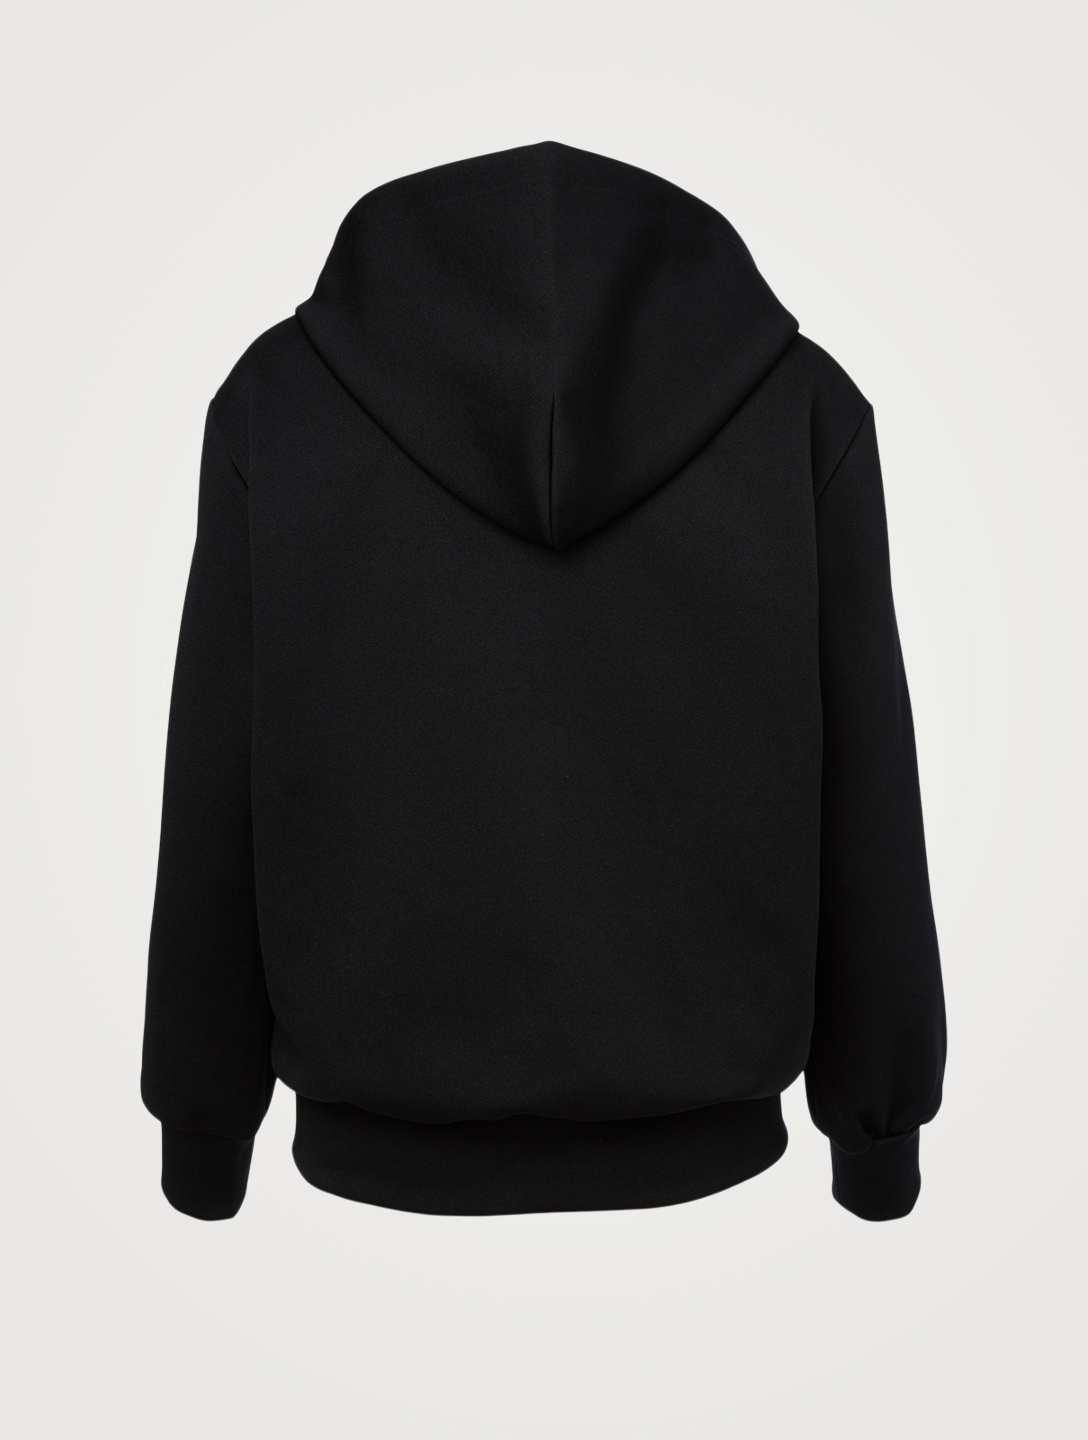 COMME DES GARÇONS PLAY Heart Patch Hoodie Men's Black